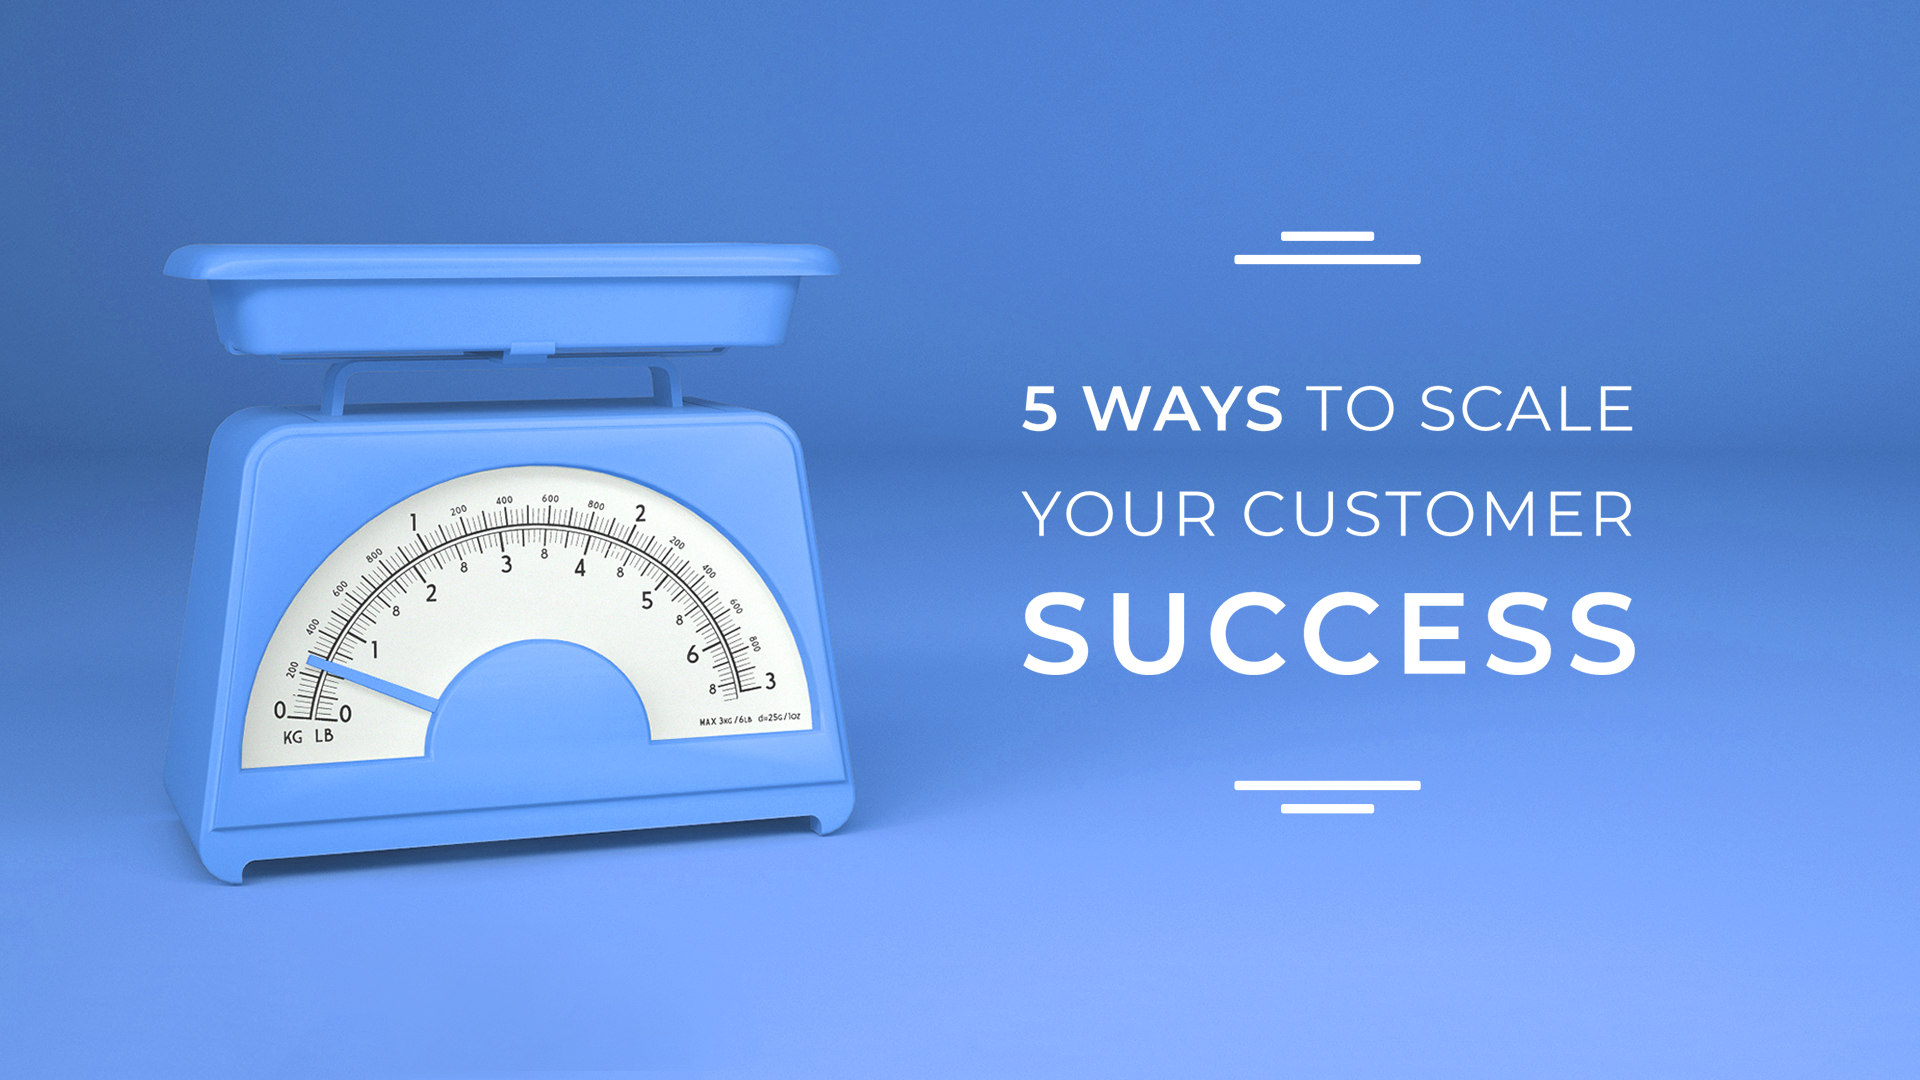 5 Ways to Scale Your Customer Success